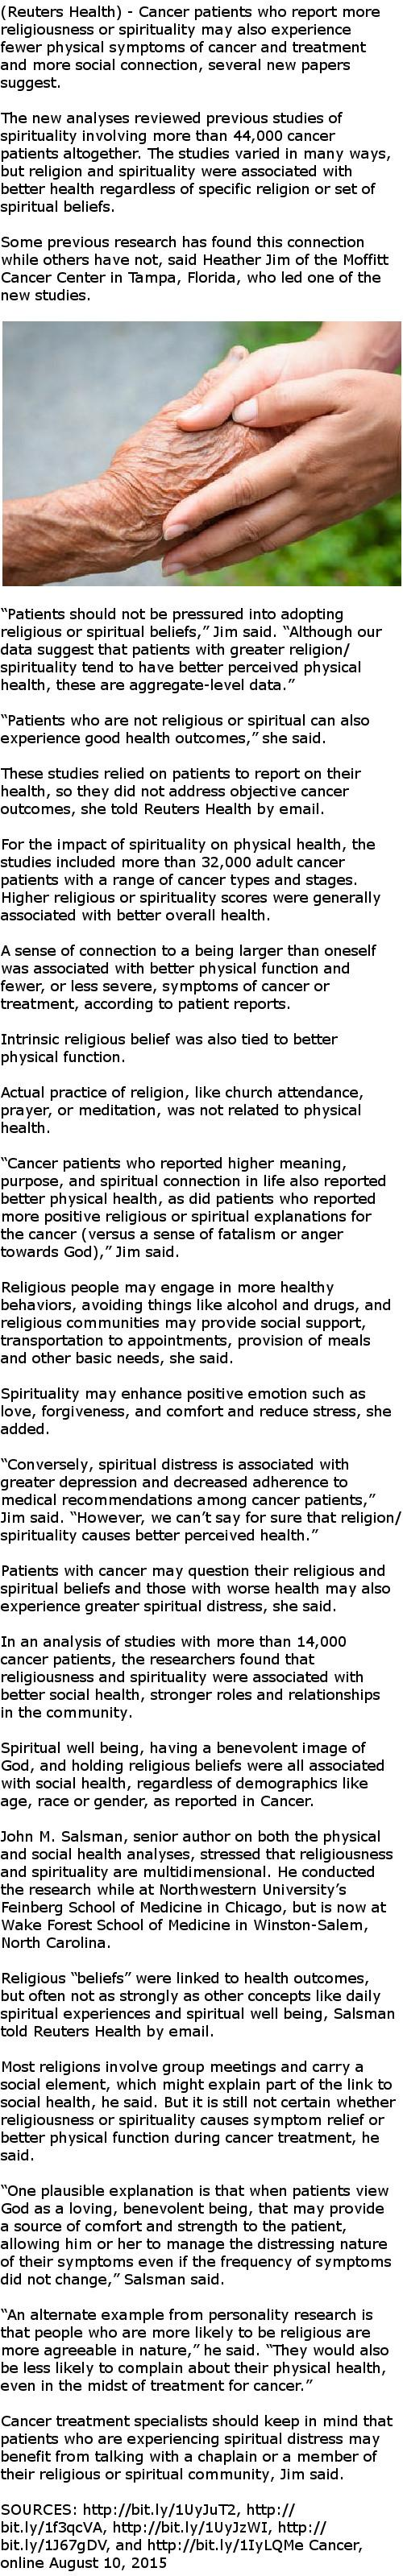 Spirituality may be tied to easier cancer course